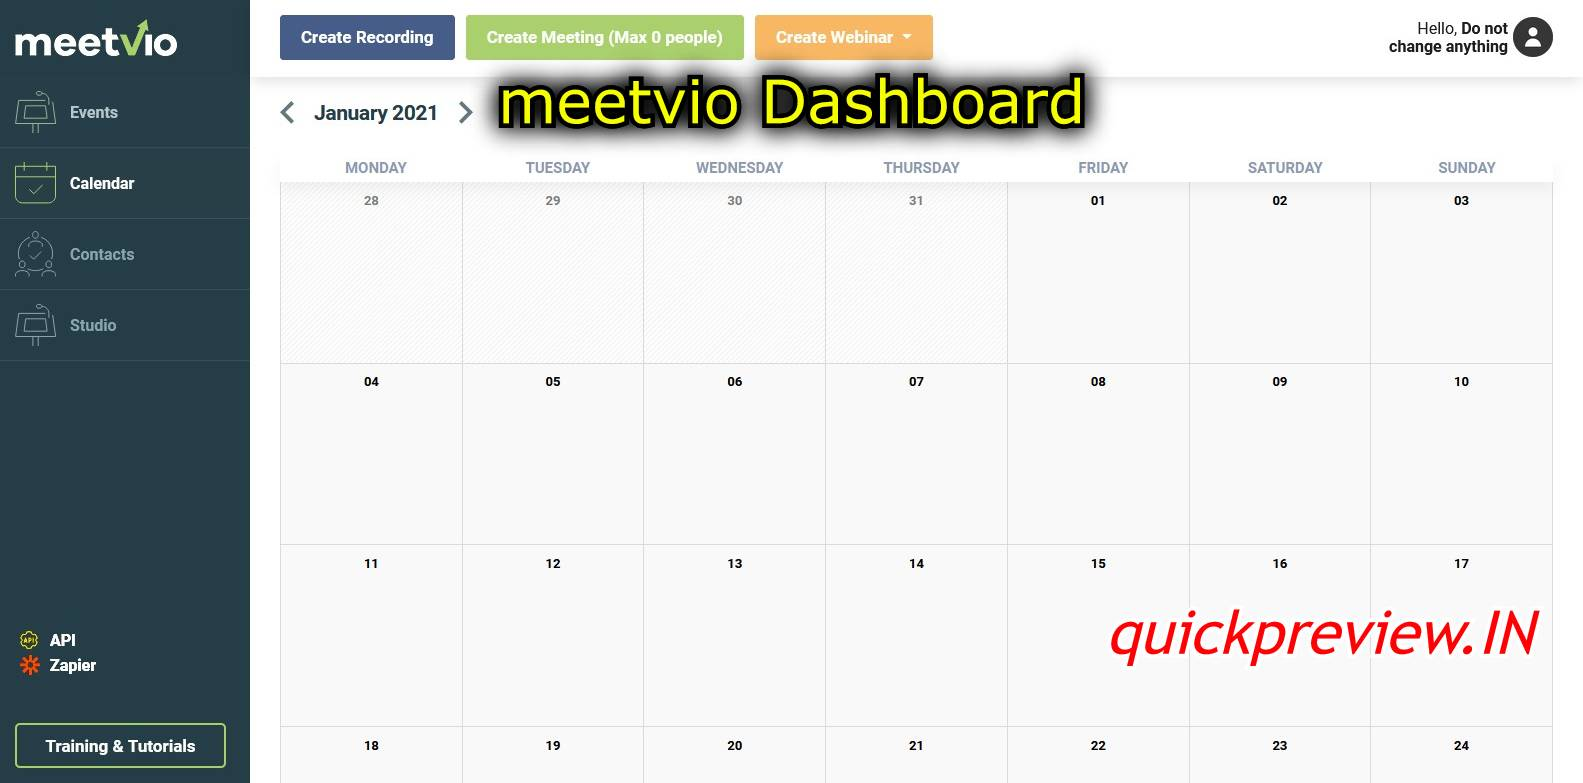 meetvio dashboard